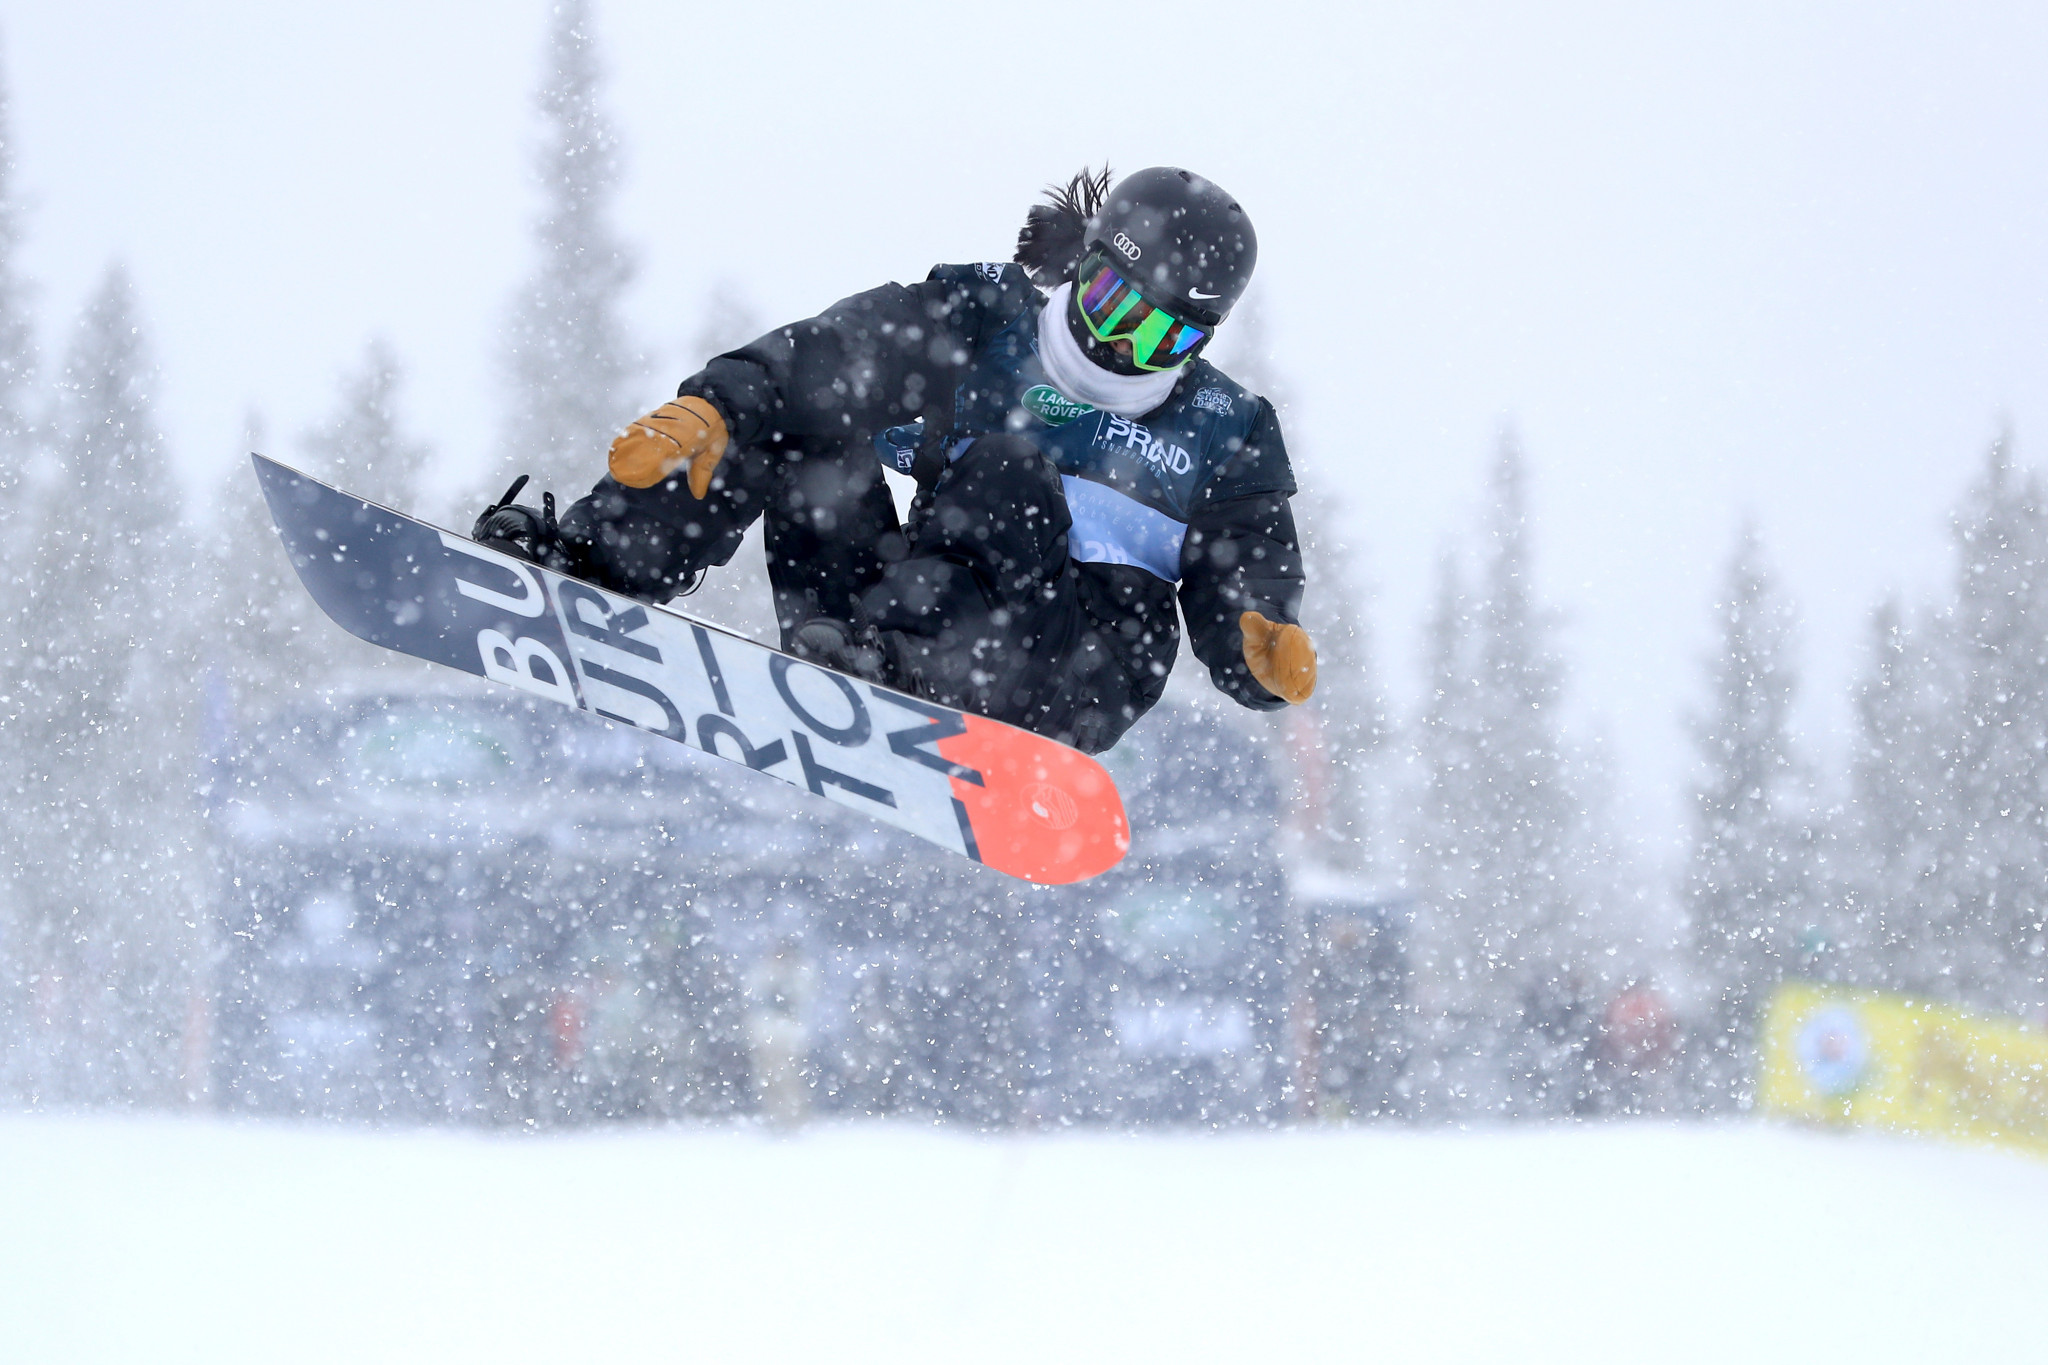 Cai earns last-gasp halfpipe victory at Snowboard World Cup in Mammoth Mountain